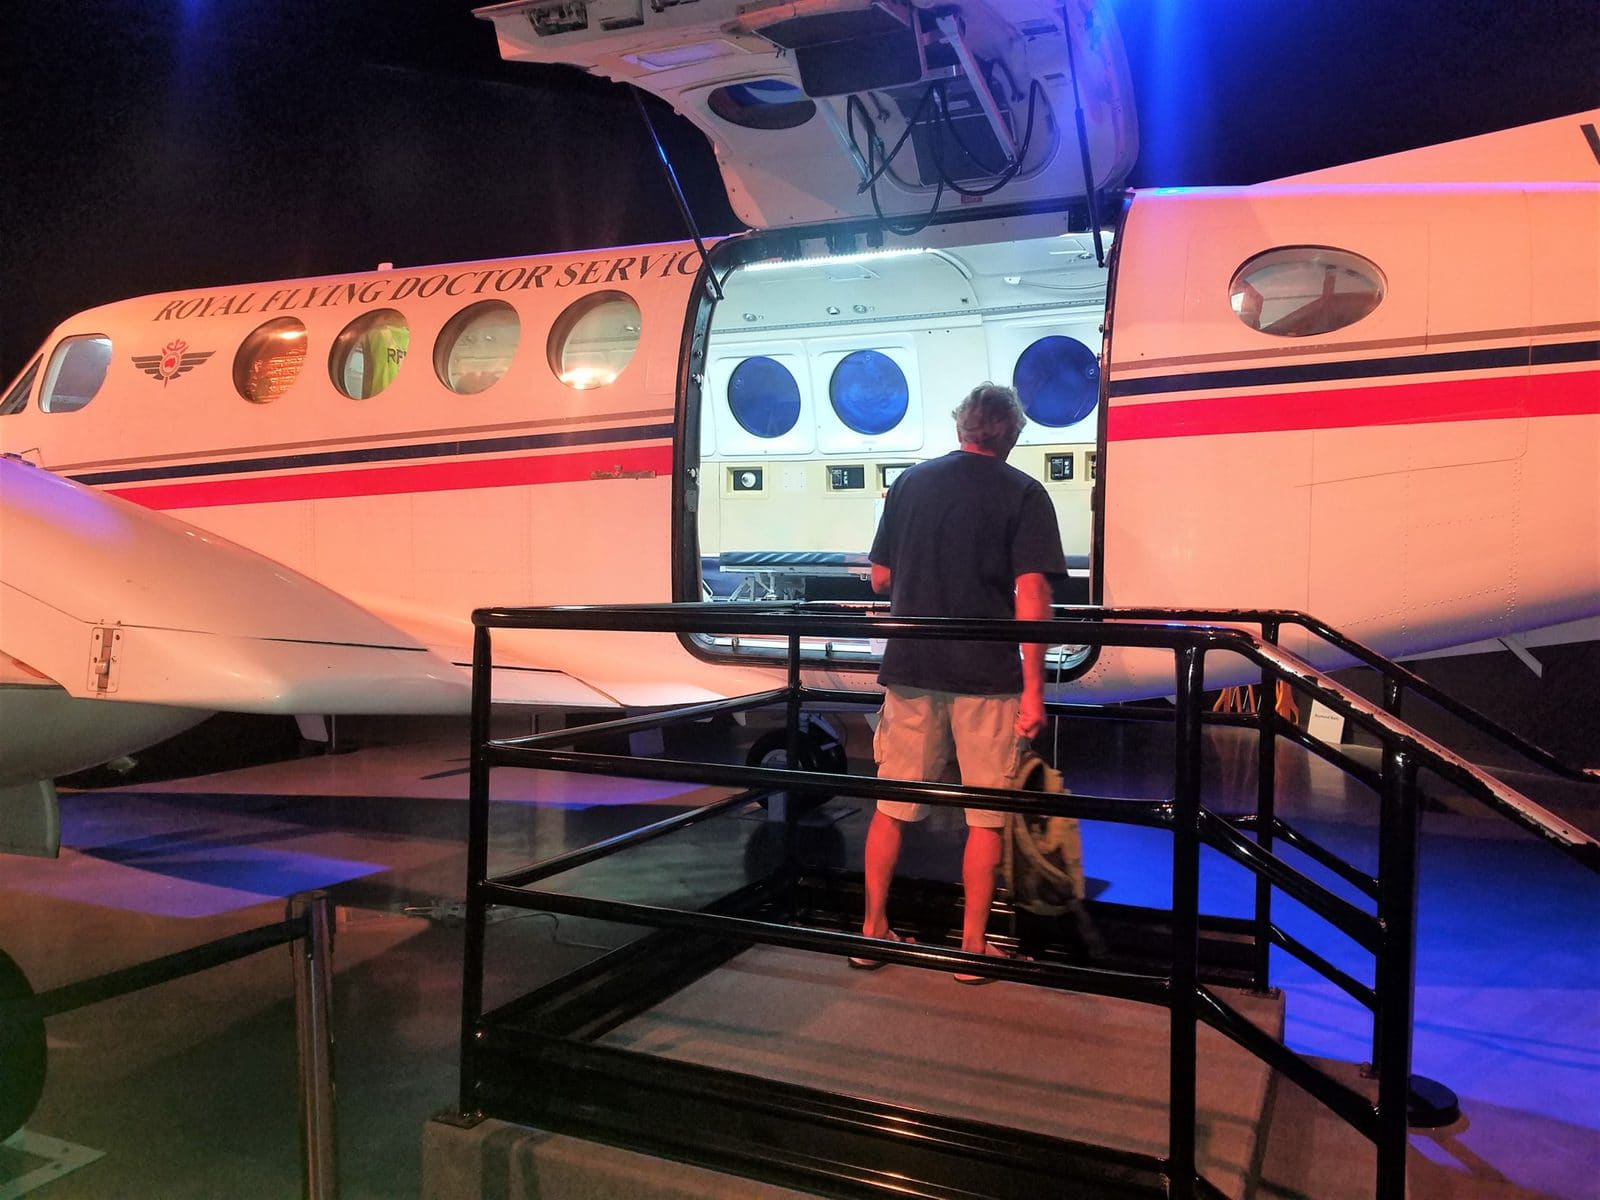 man looking inside small airplane